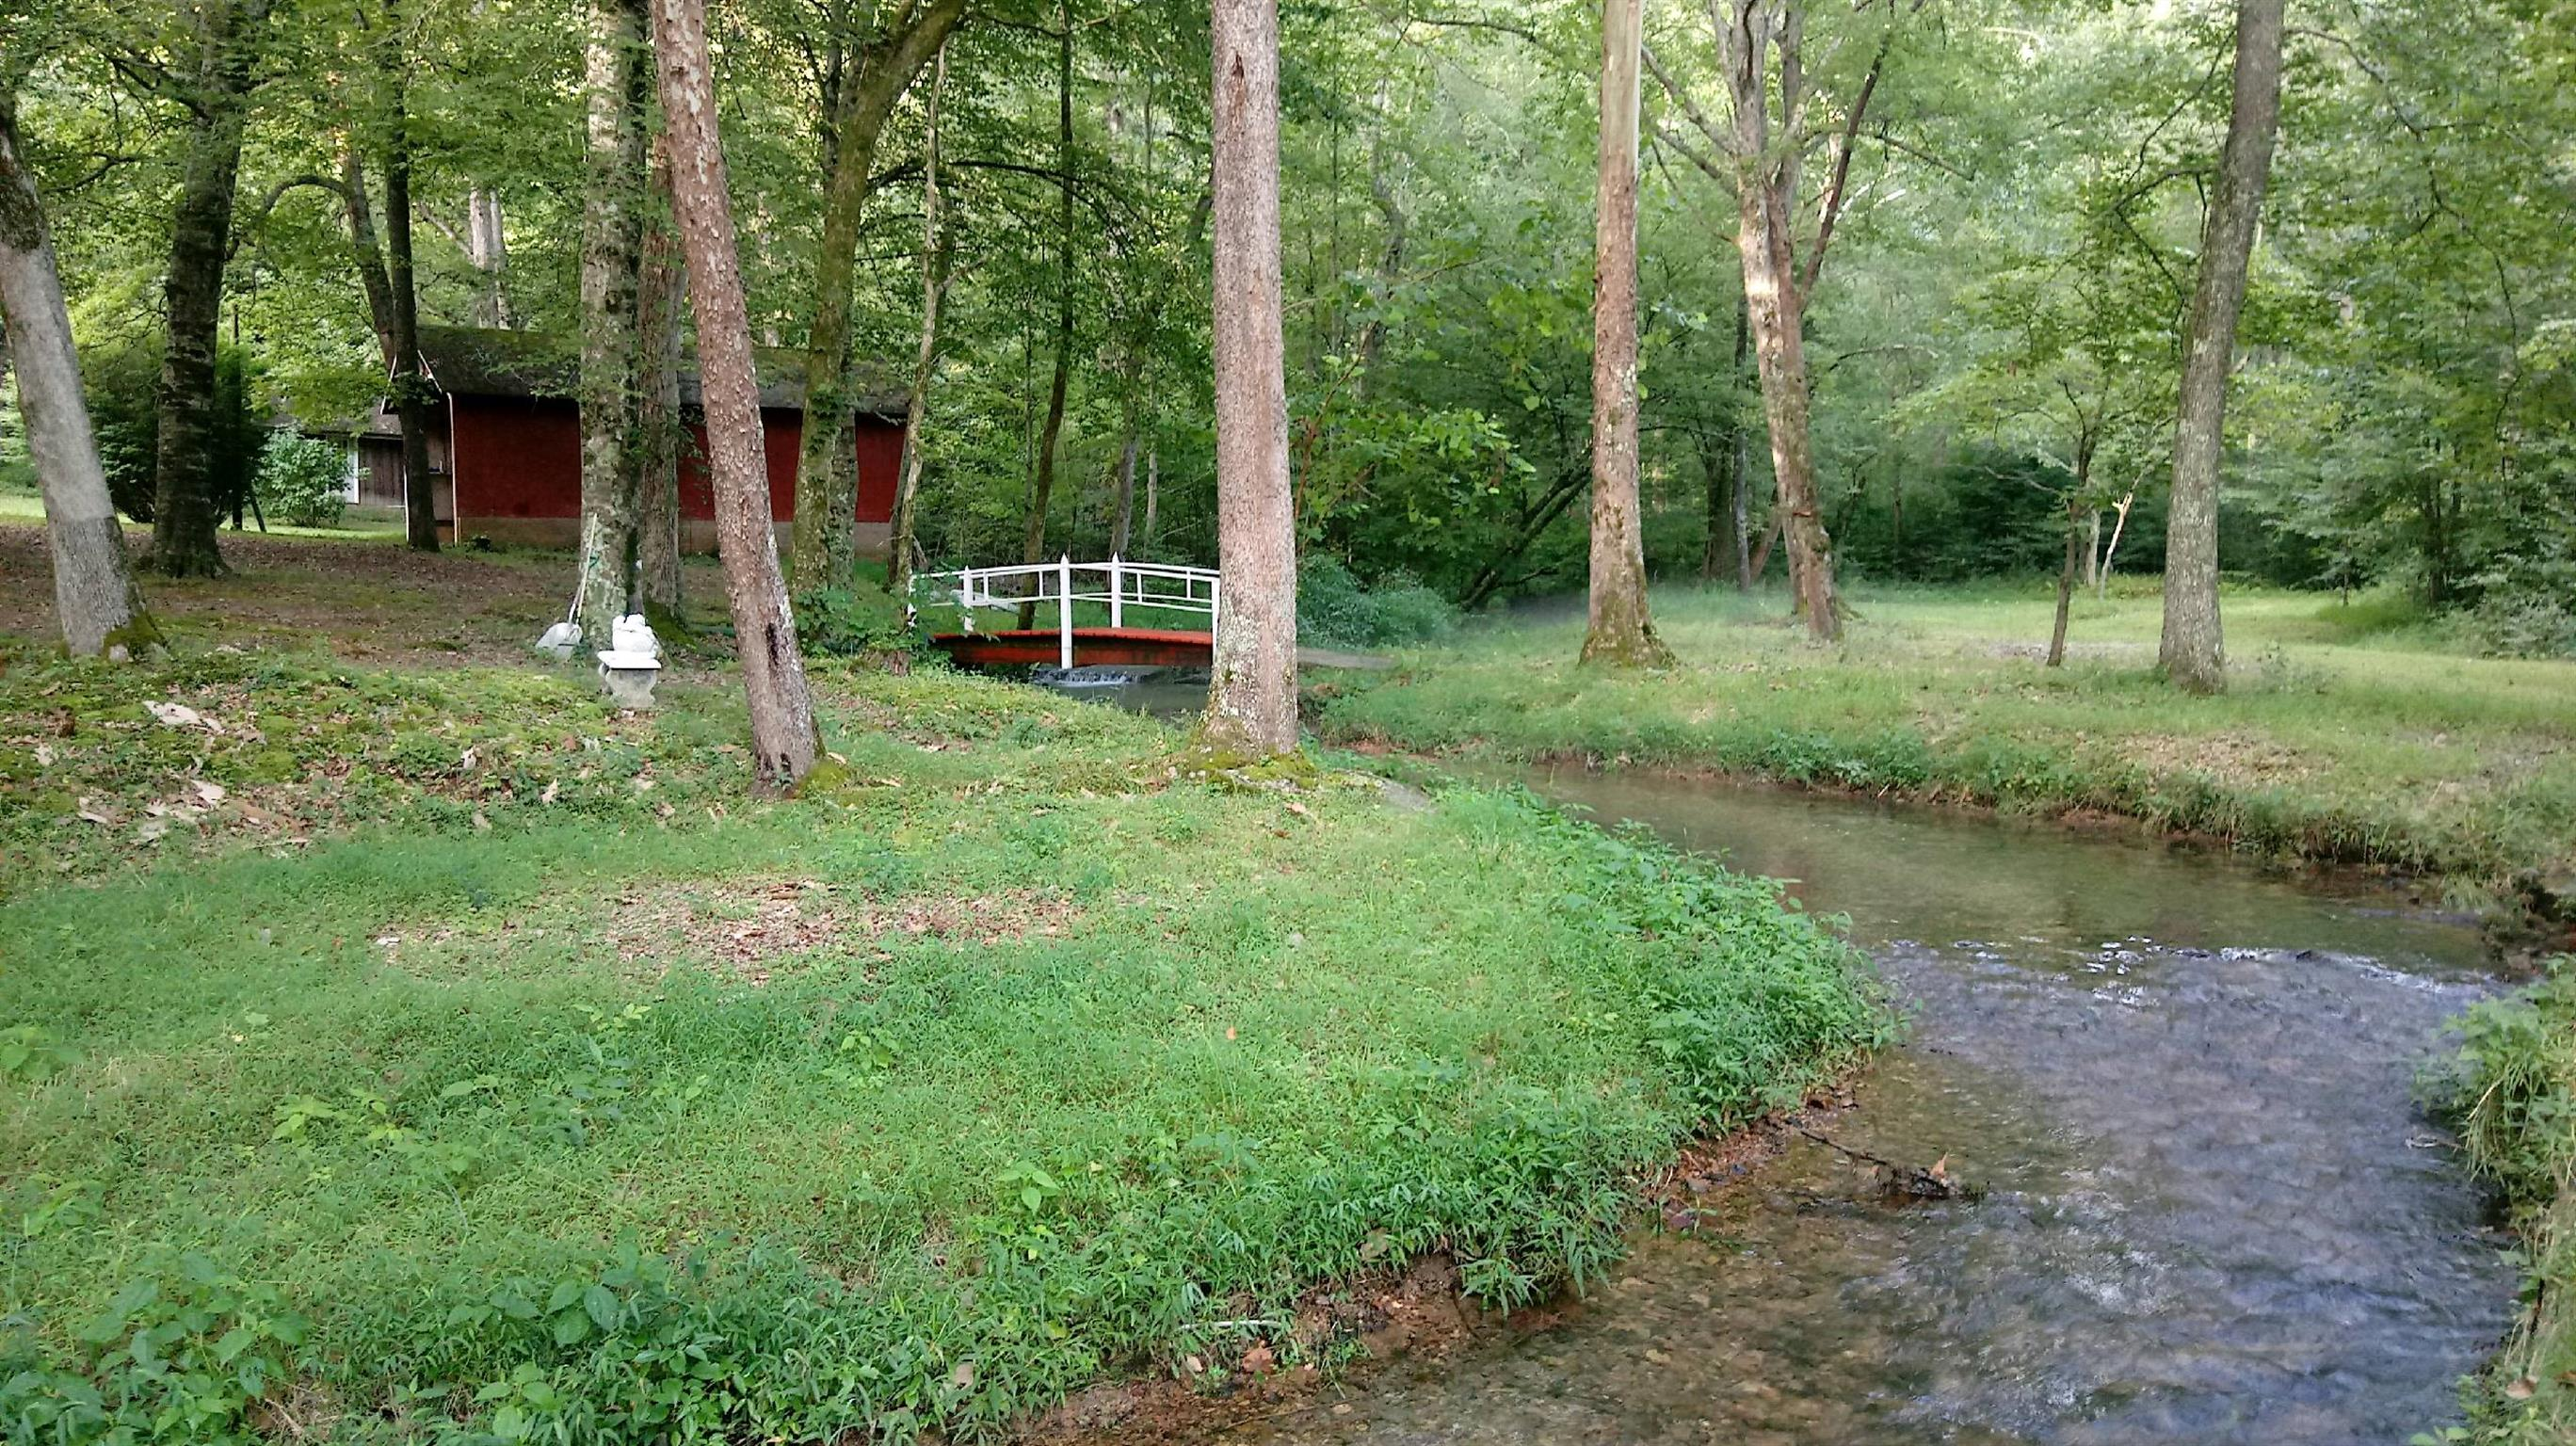 100 Cemetery Rd, N, Lawrenceburg, TN 38464 - Lawrenceburg, TN real estate listing